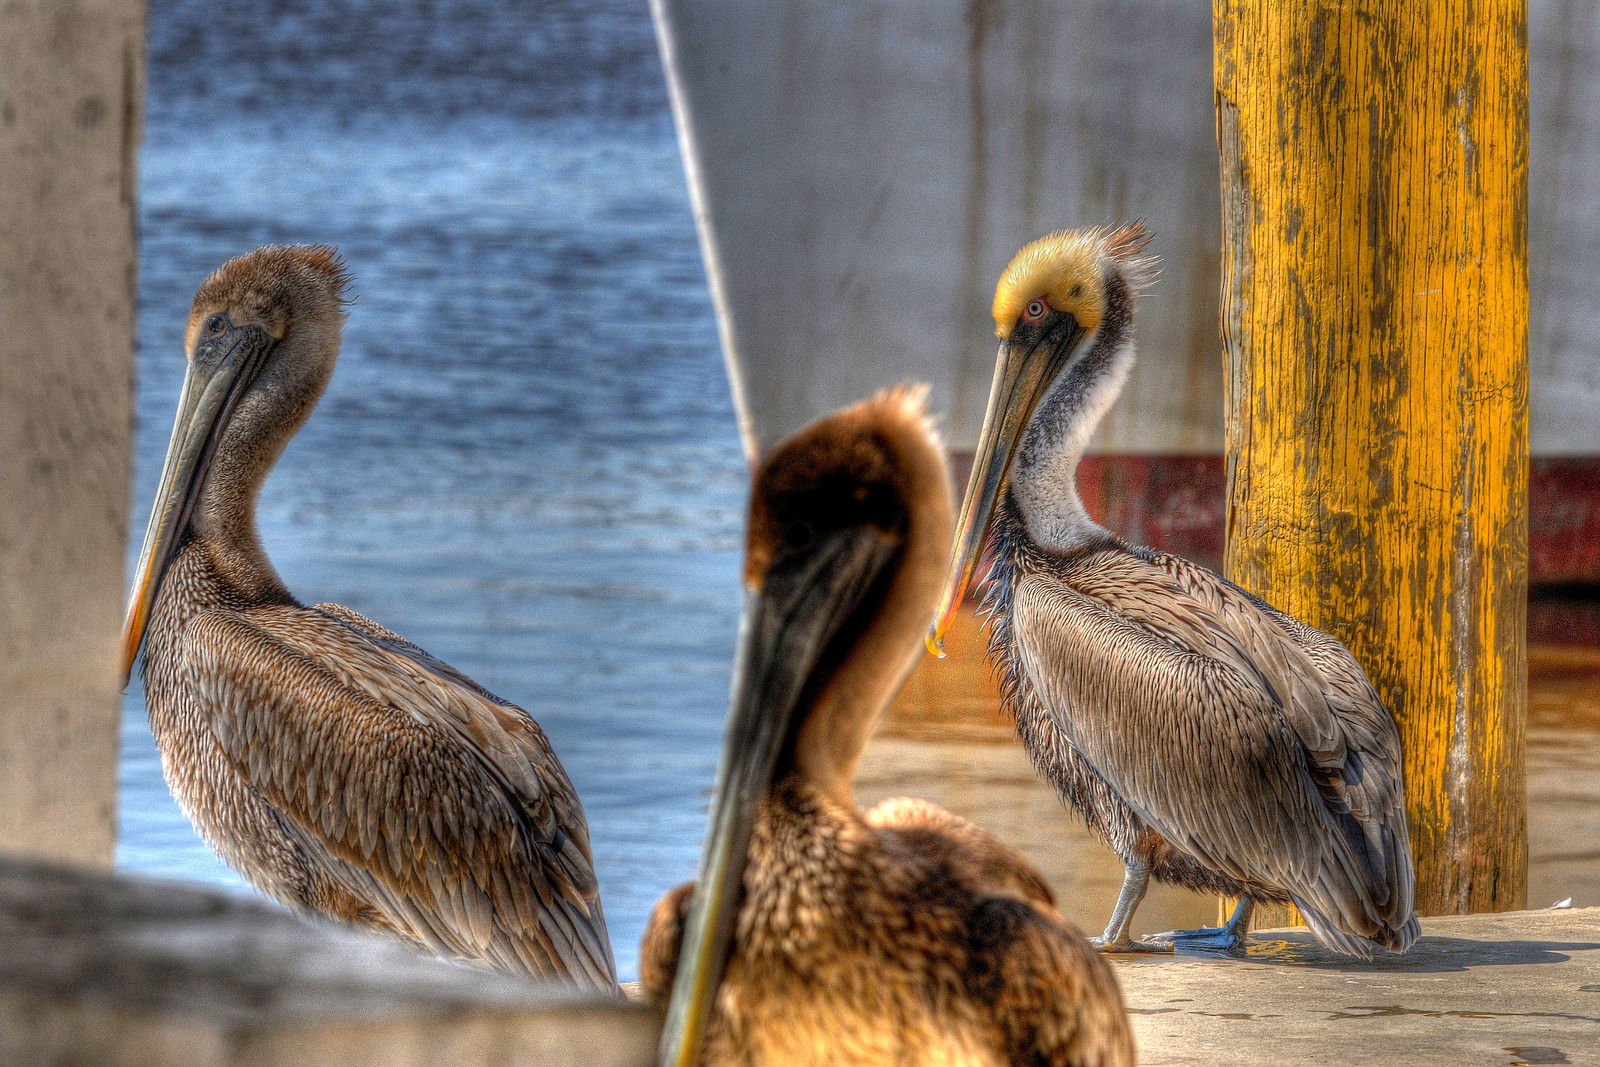 Pelicans wait on the loading dock at Independent Seafood, a fresh seafood warehouse, on the waterfront in Georgetown, SC on Saturday, March 10, 2012. Copyright 2012 Jason Barnette